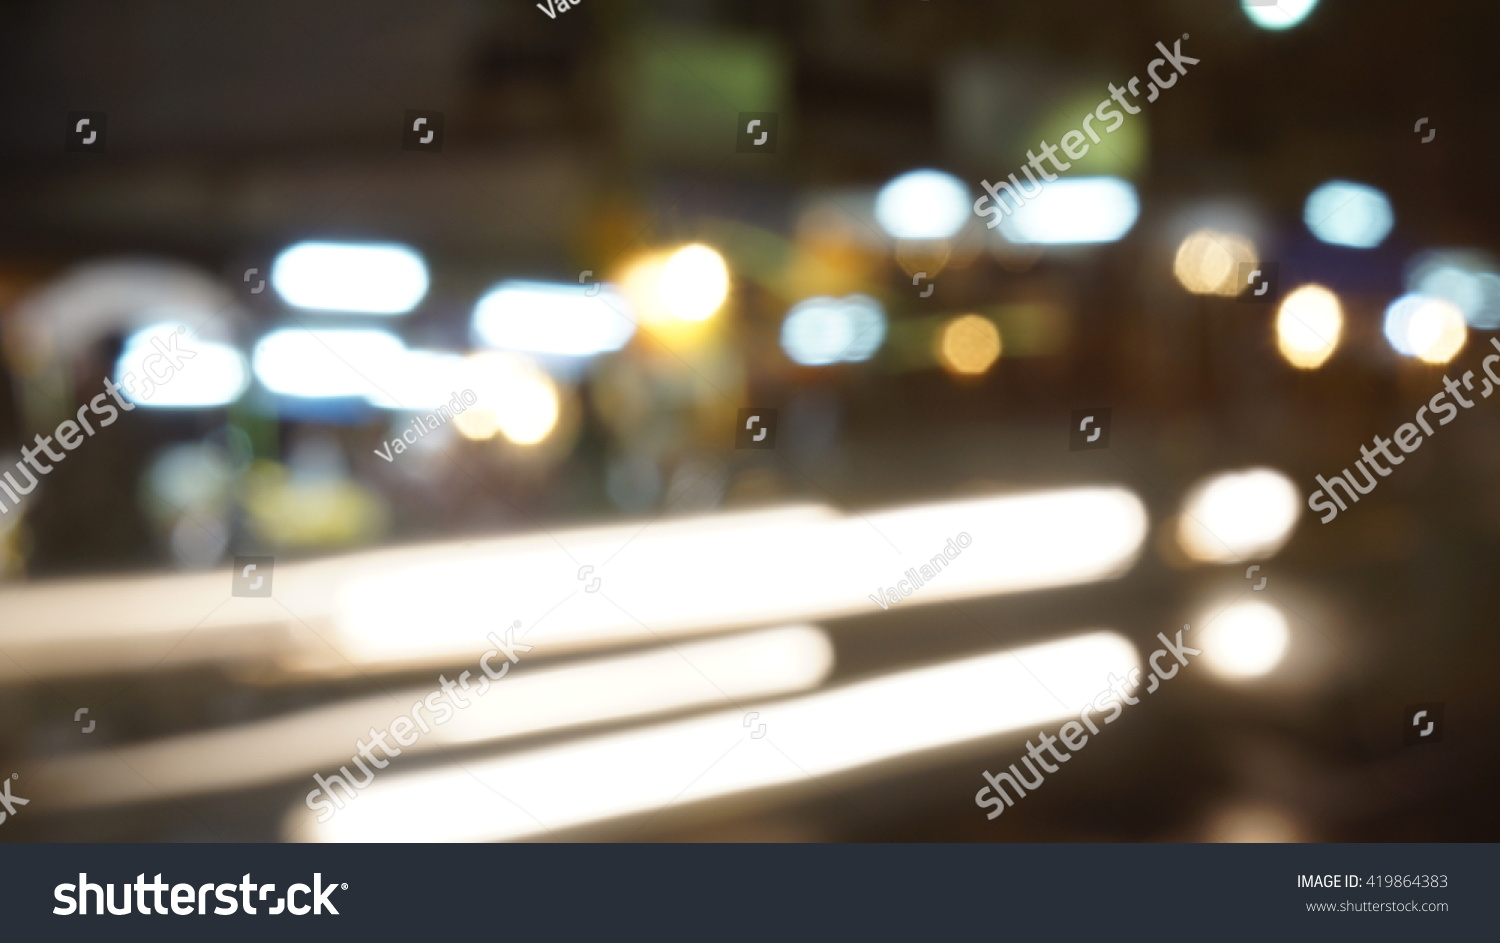 Blurred Car Lights in the Night #419864383